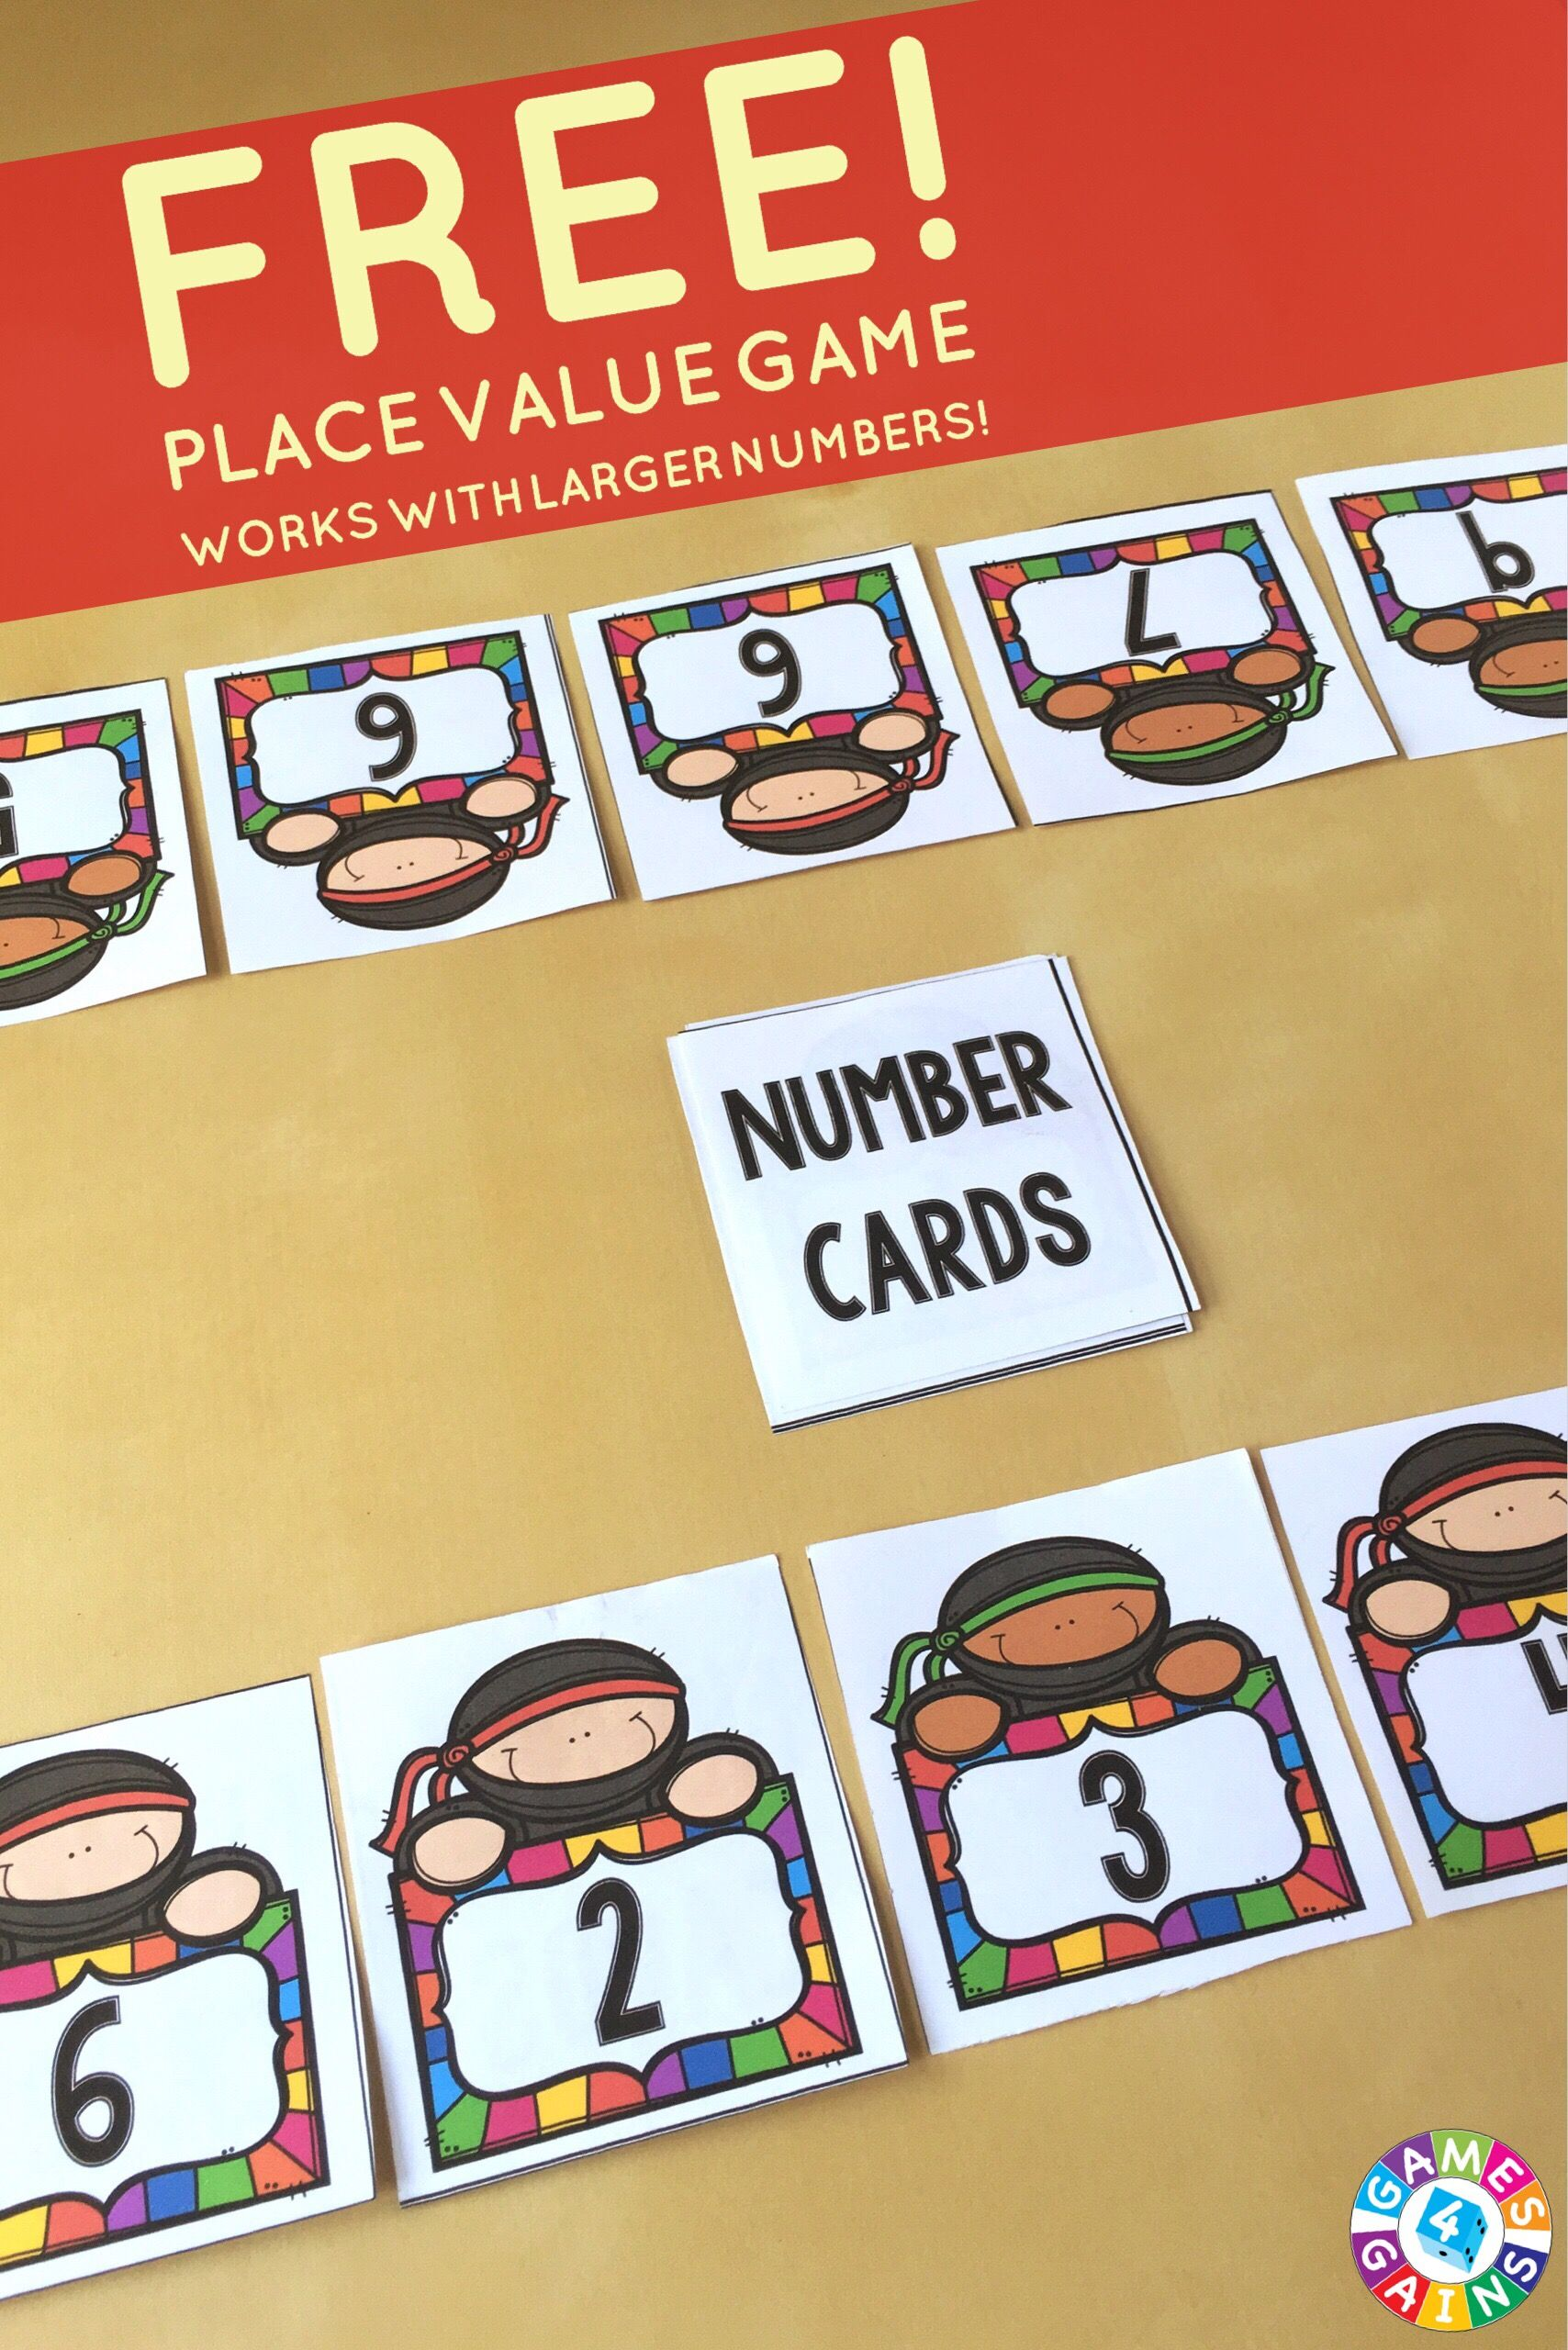 Place Value Game Top Up! Place values, Fun classroom